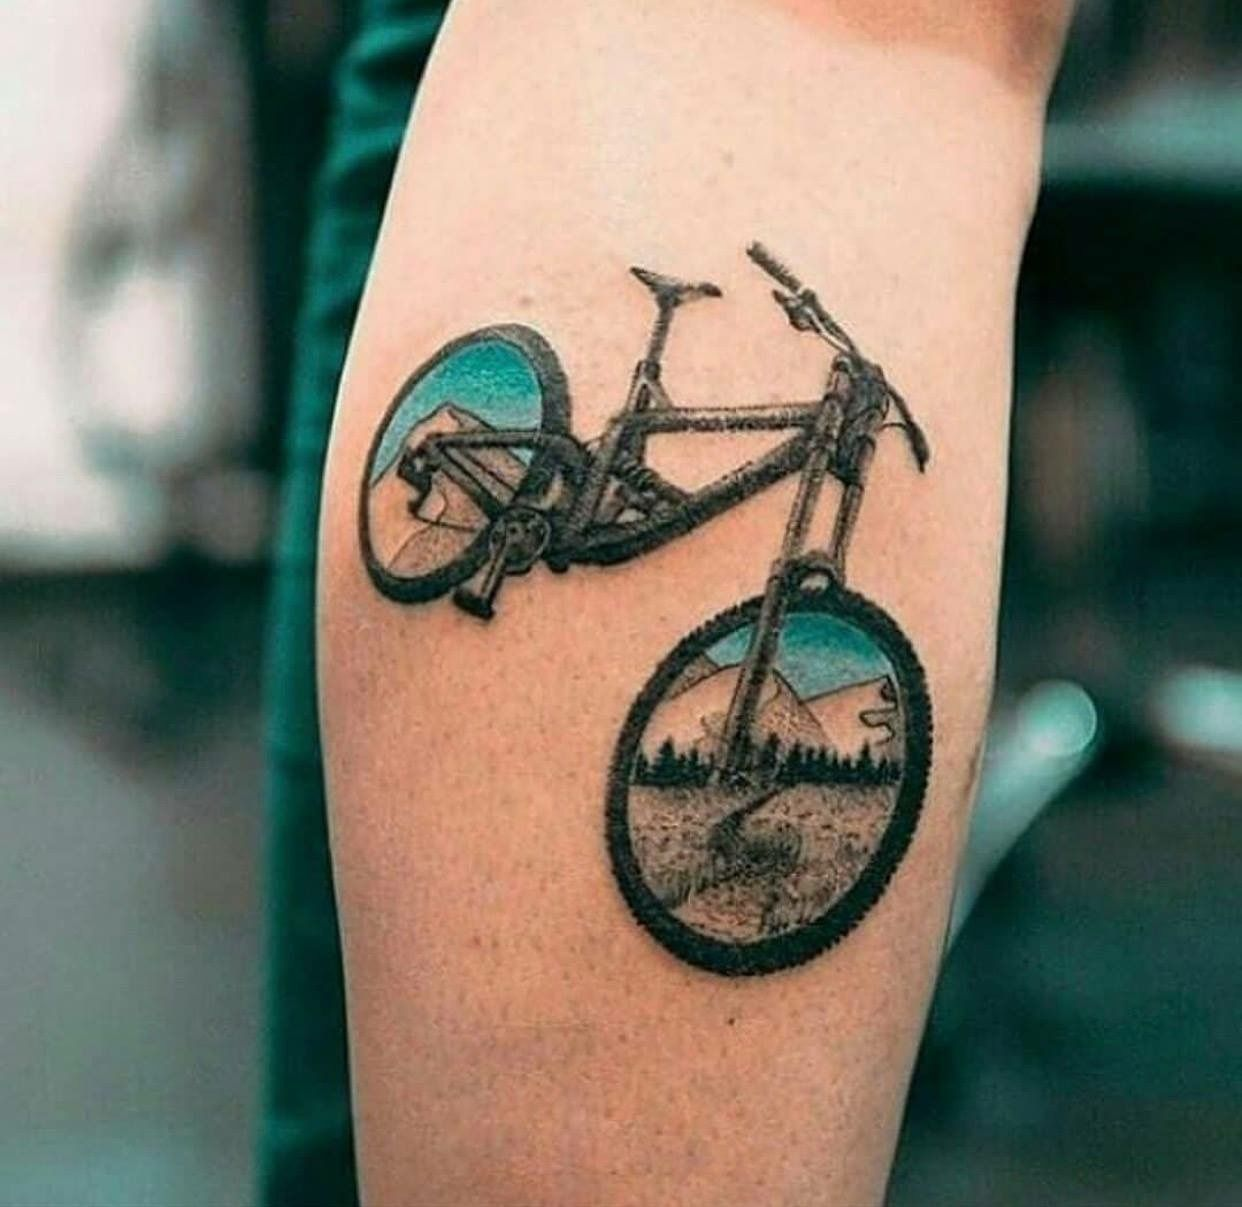 Coolest Bike Tattoo Ive Ever Seen Your Body Is A